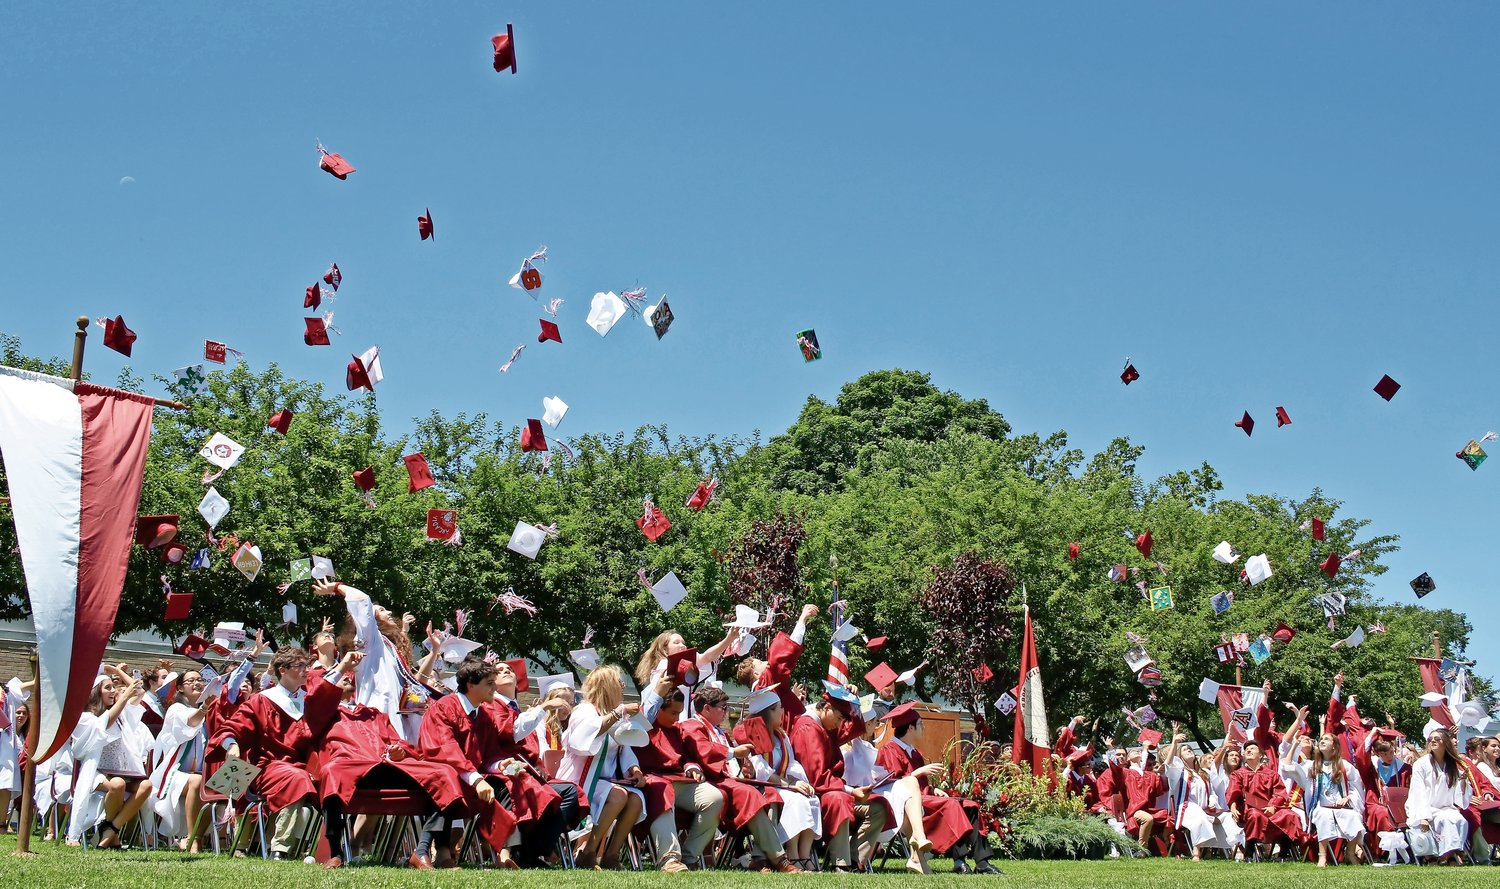 After they moved their tassels across their mortarboards, North Shore High's latest graduating class tossed their caps in the air, creating a cascade of maroon and white.